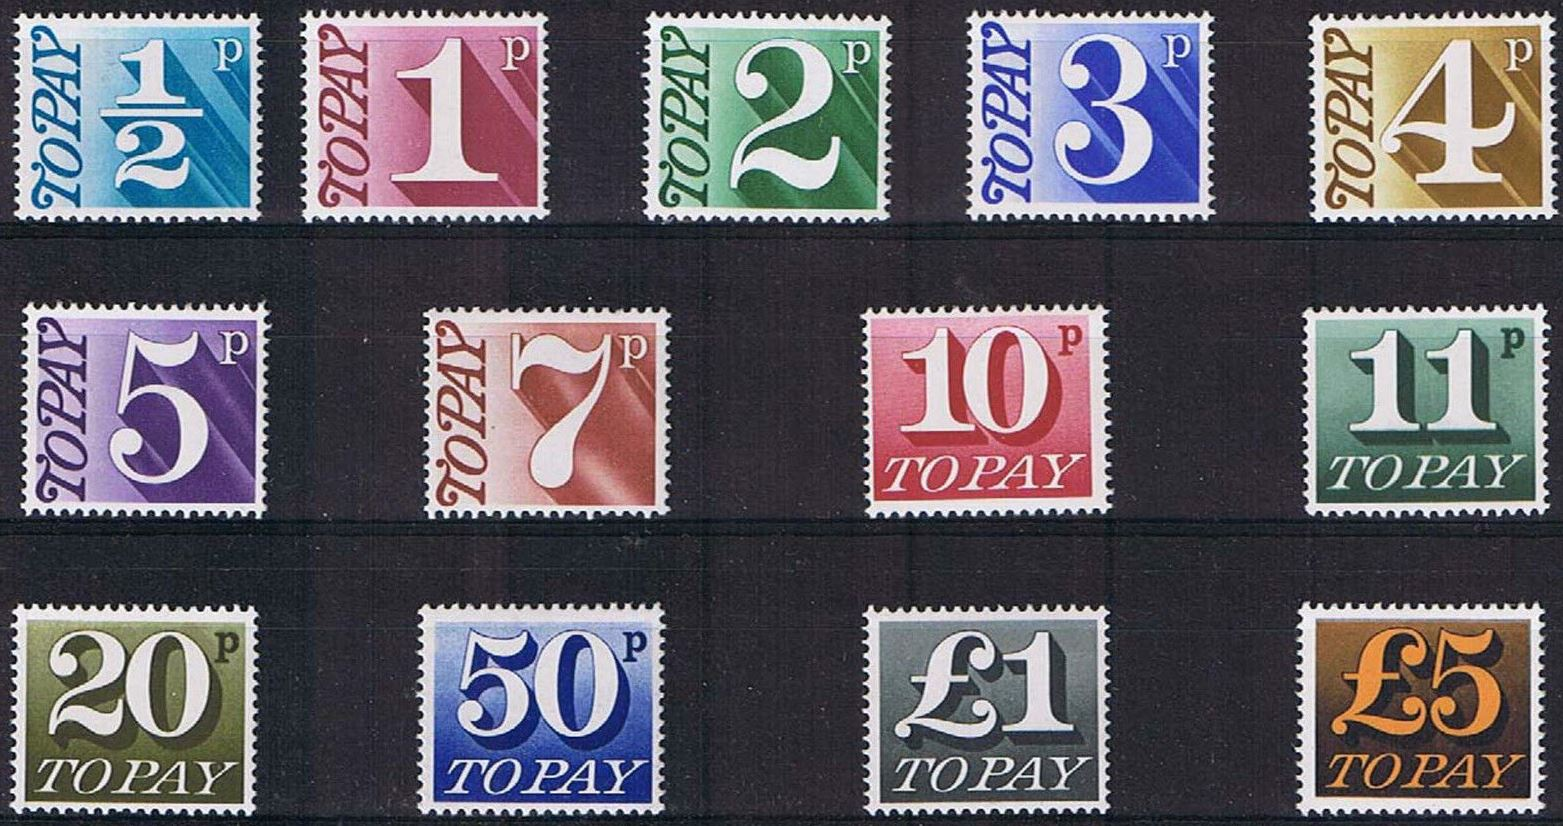 1970-75 GB - QEII - D77-D89 To Pay Complete Set (13) MNH